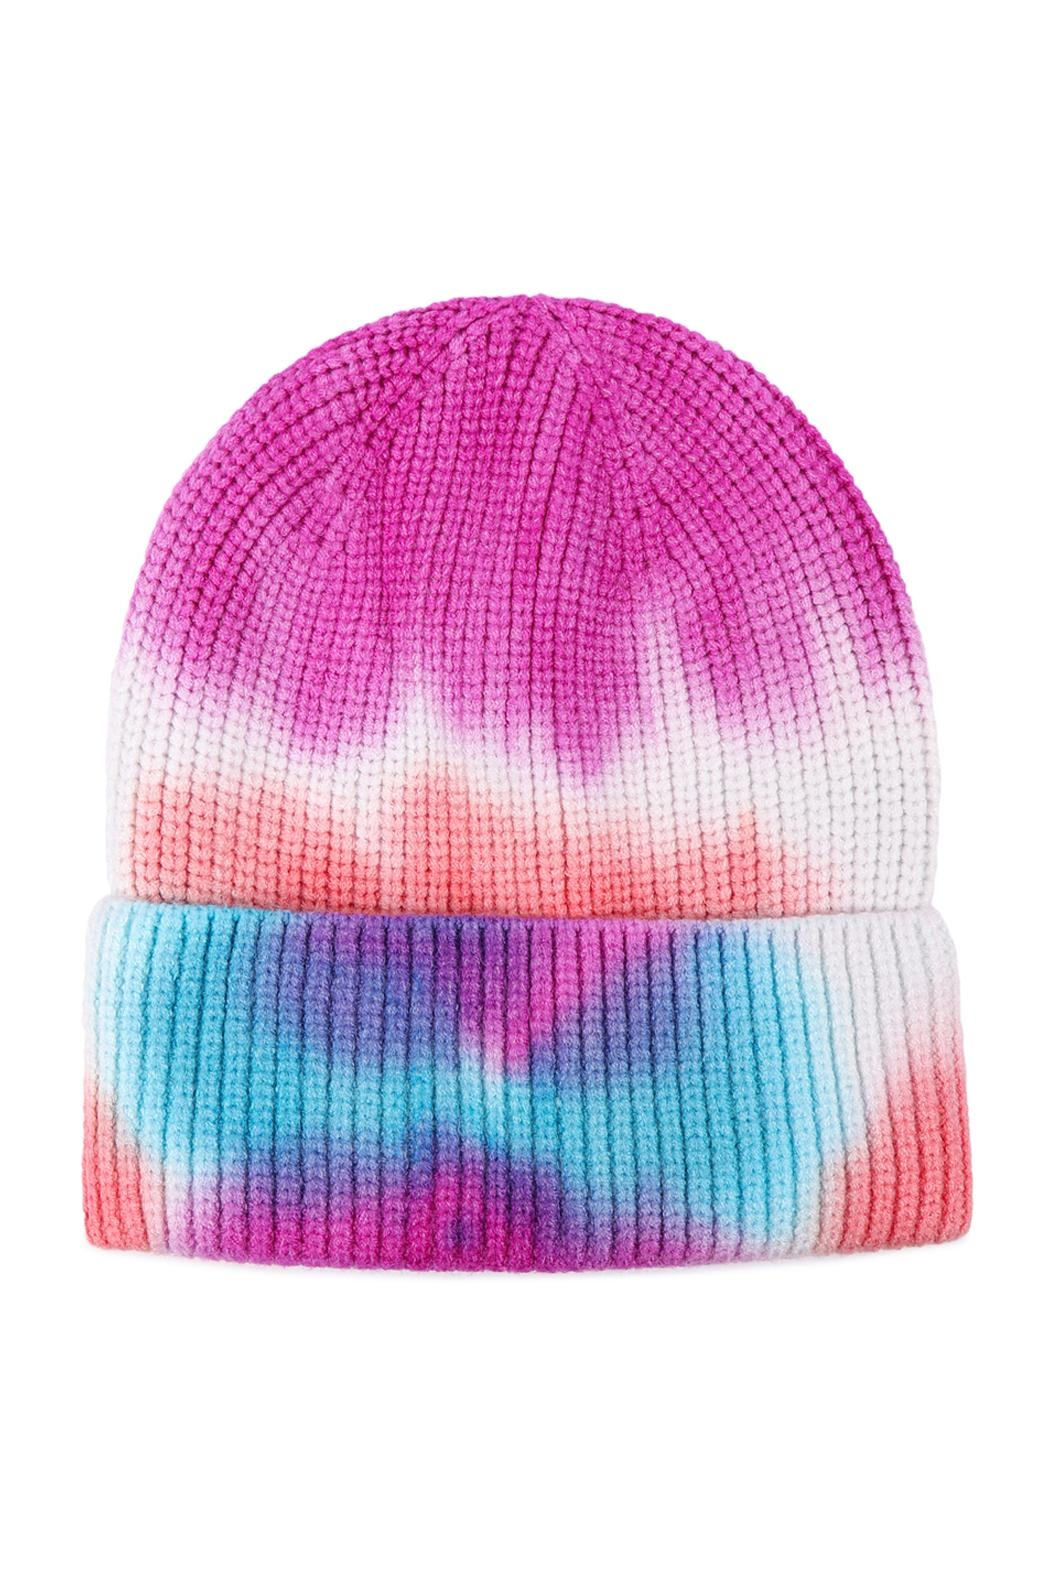 Riah Fashion Tie-Dye-Knitted-Multicolor-Beanie - Front Cropped Image